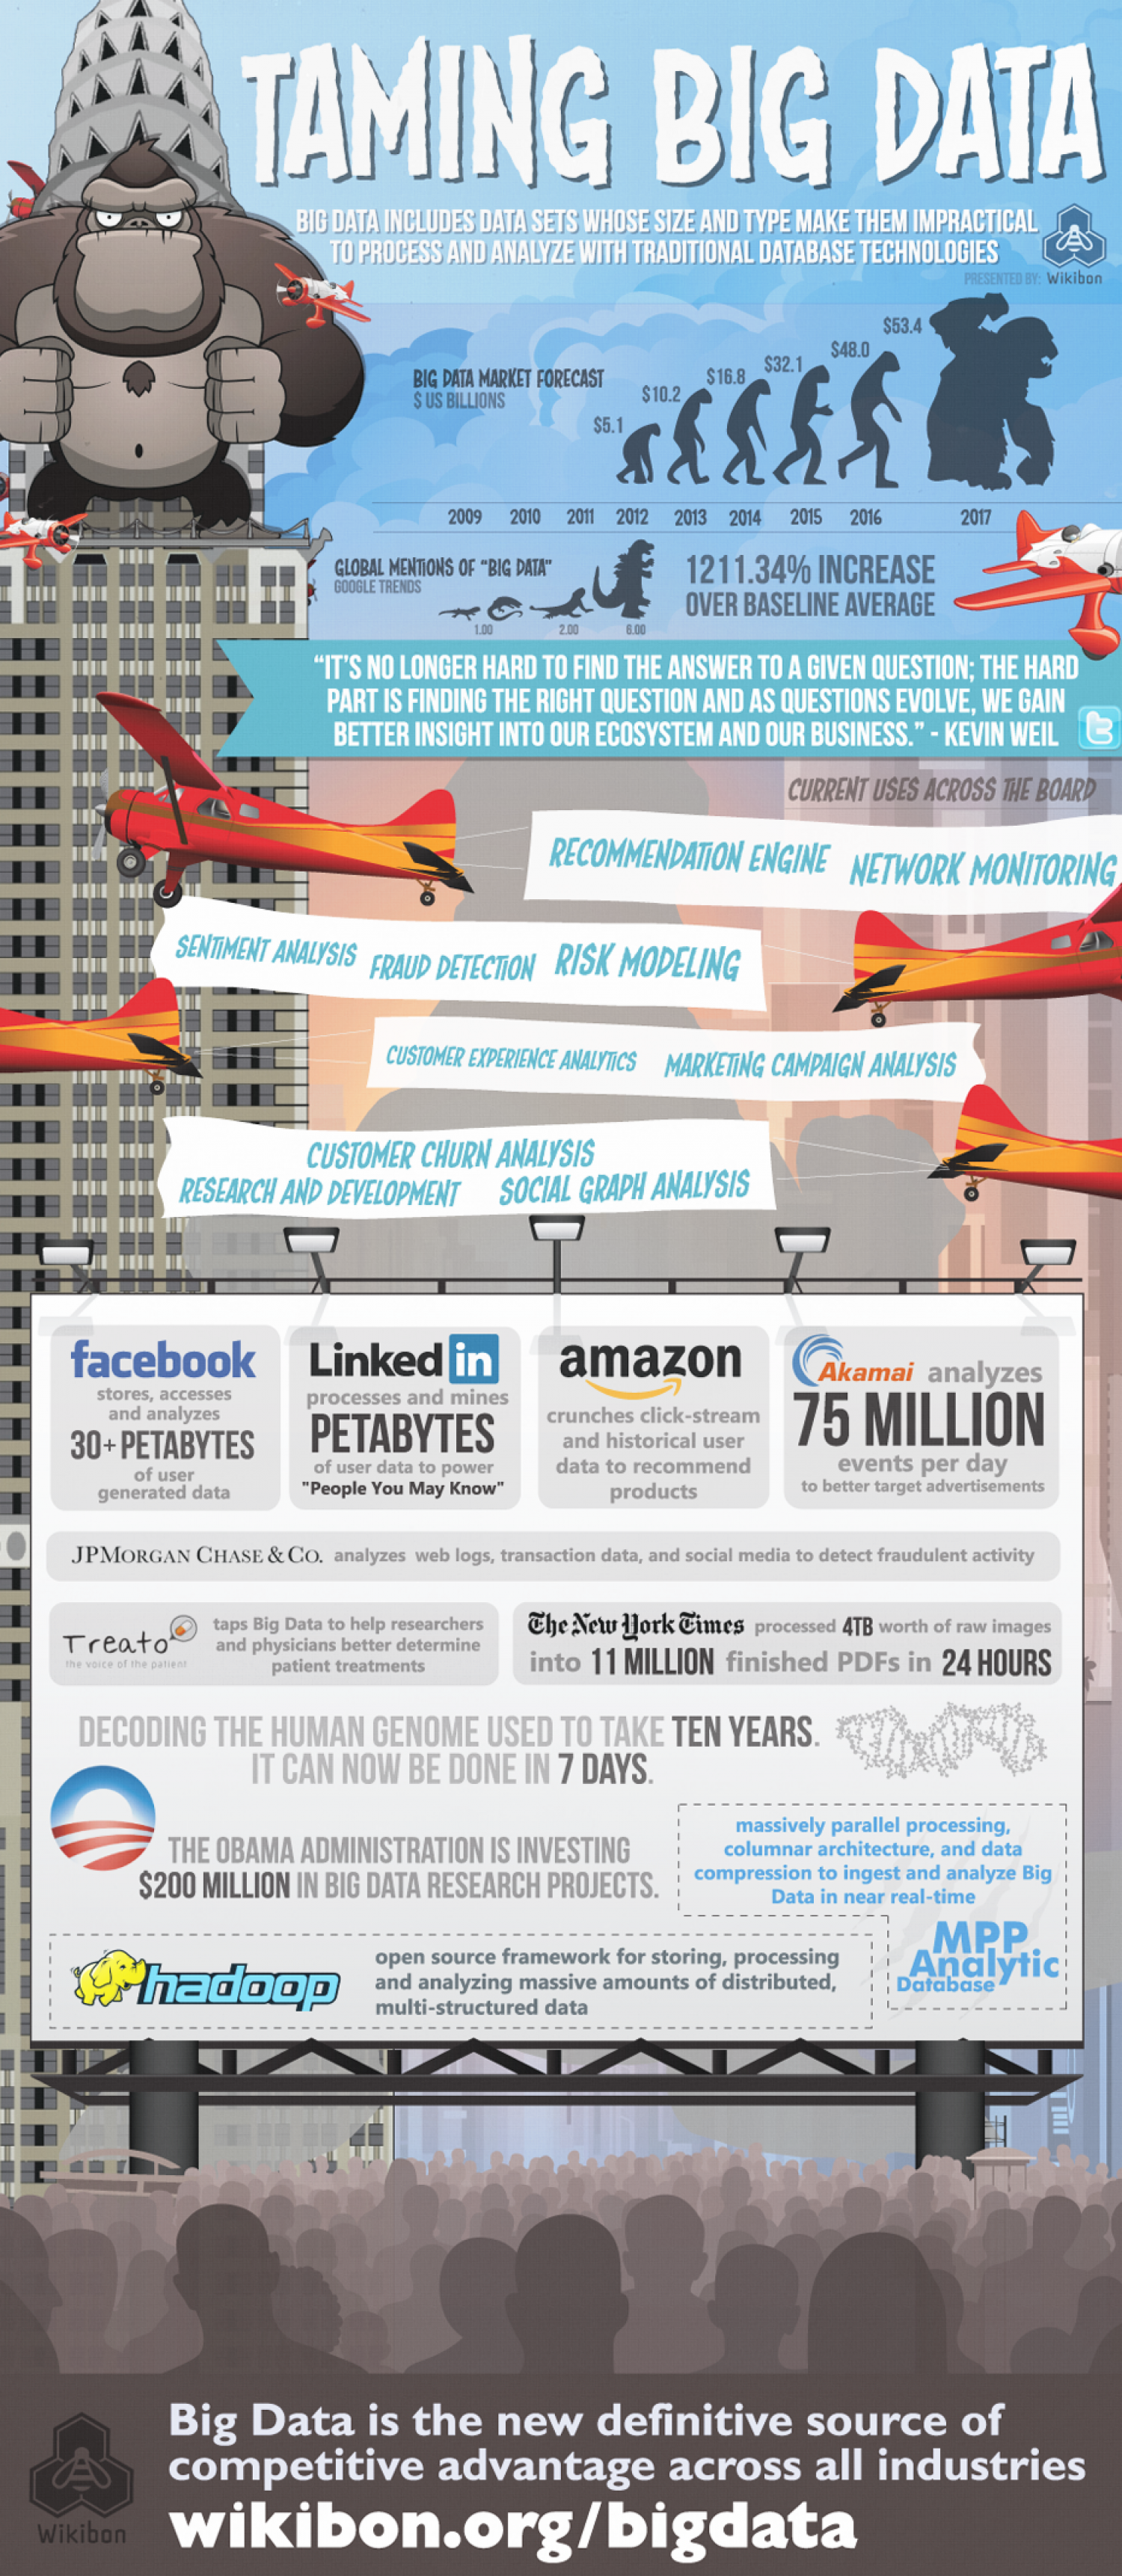 Taming Big Data Infographic